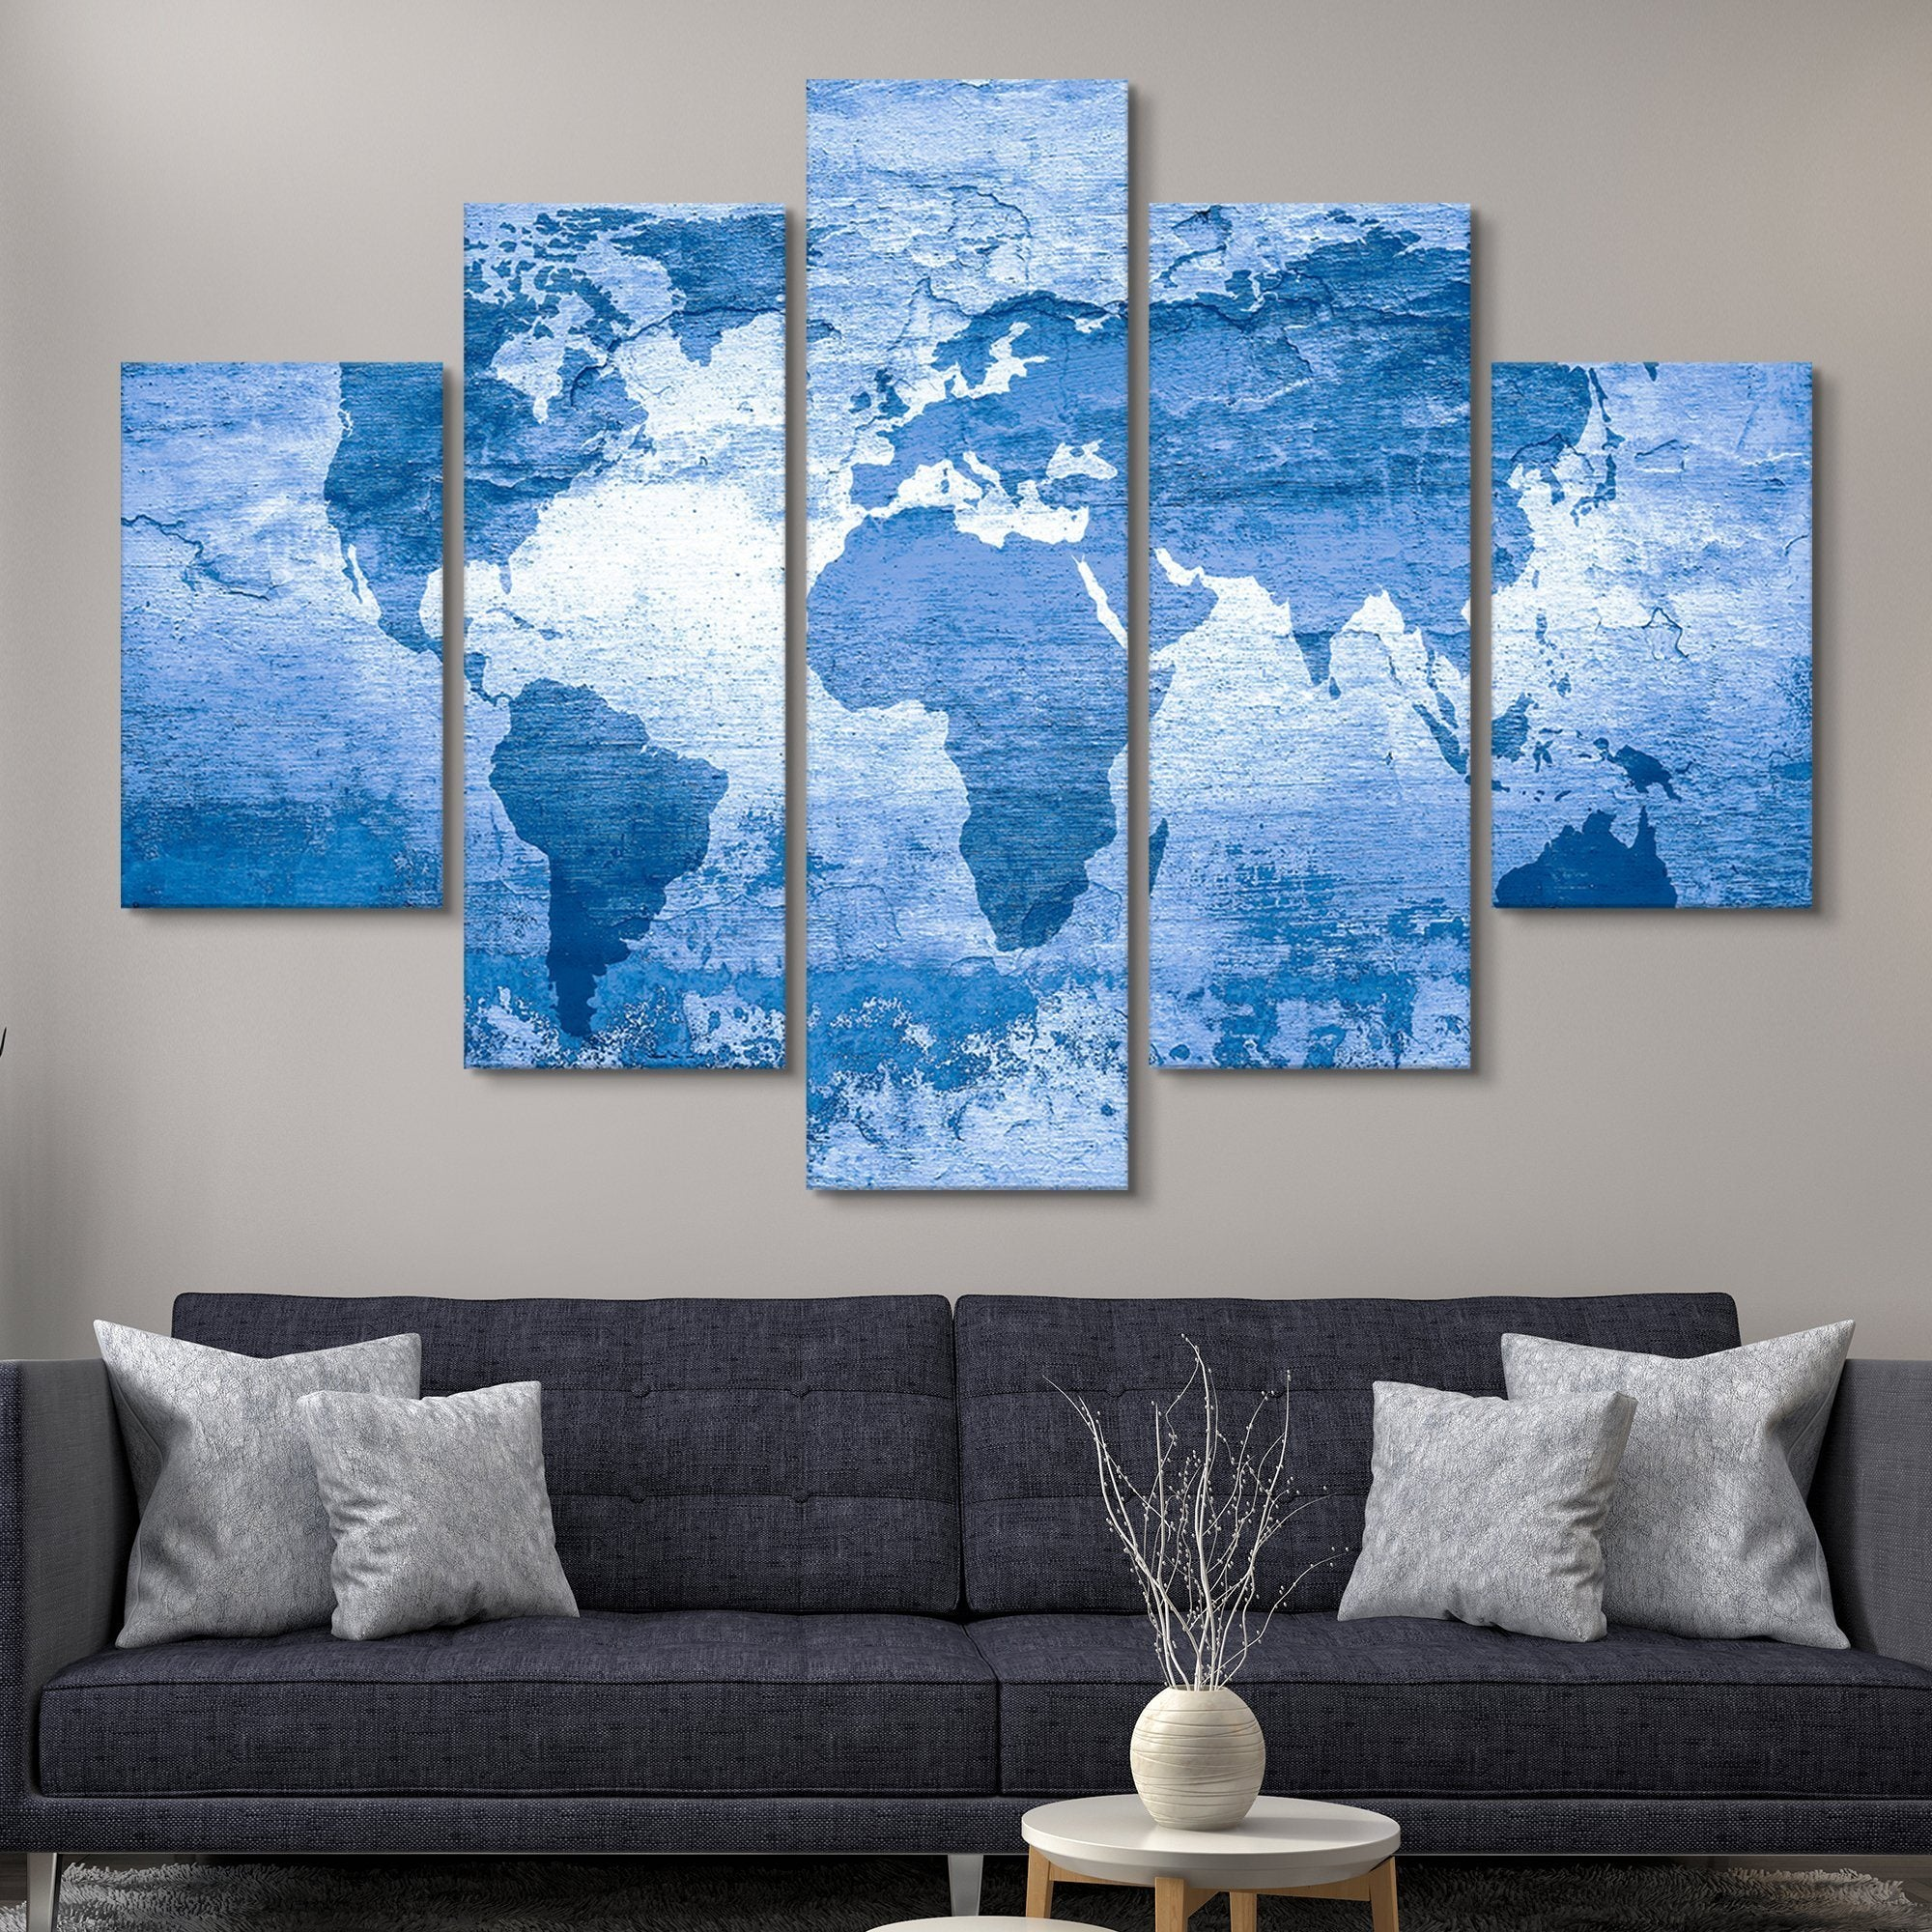 5 piece world map wall art